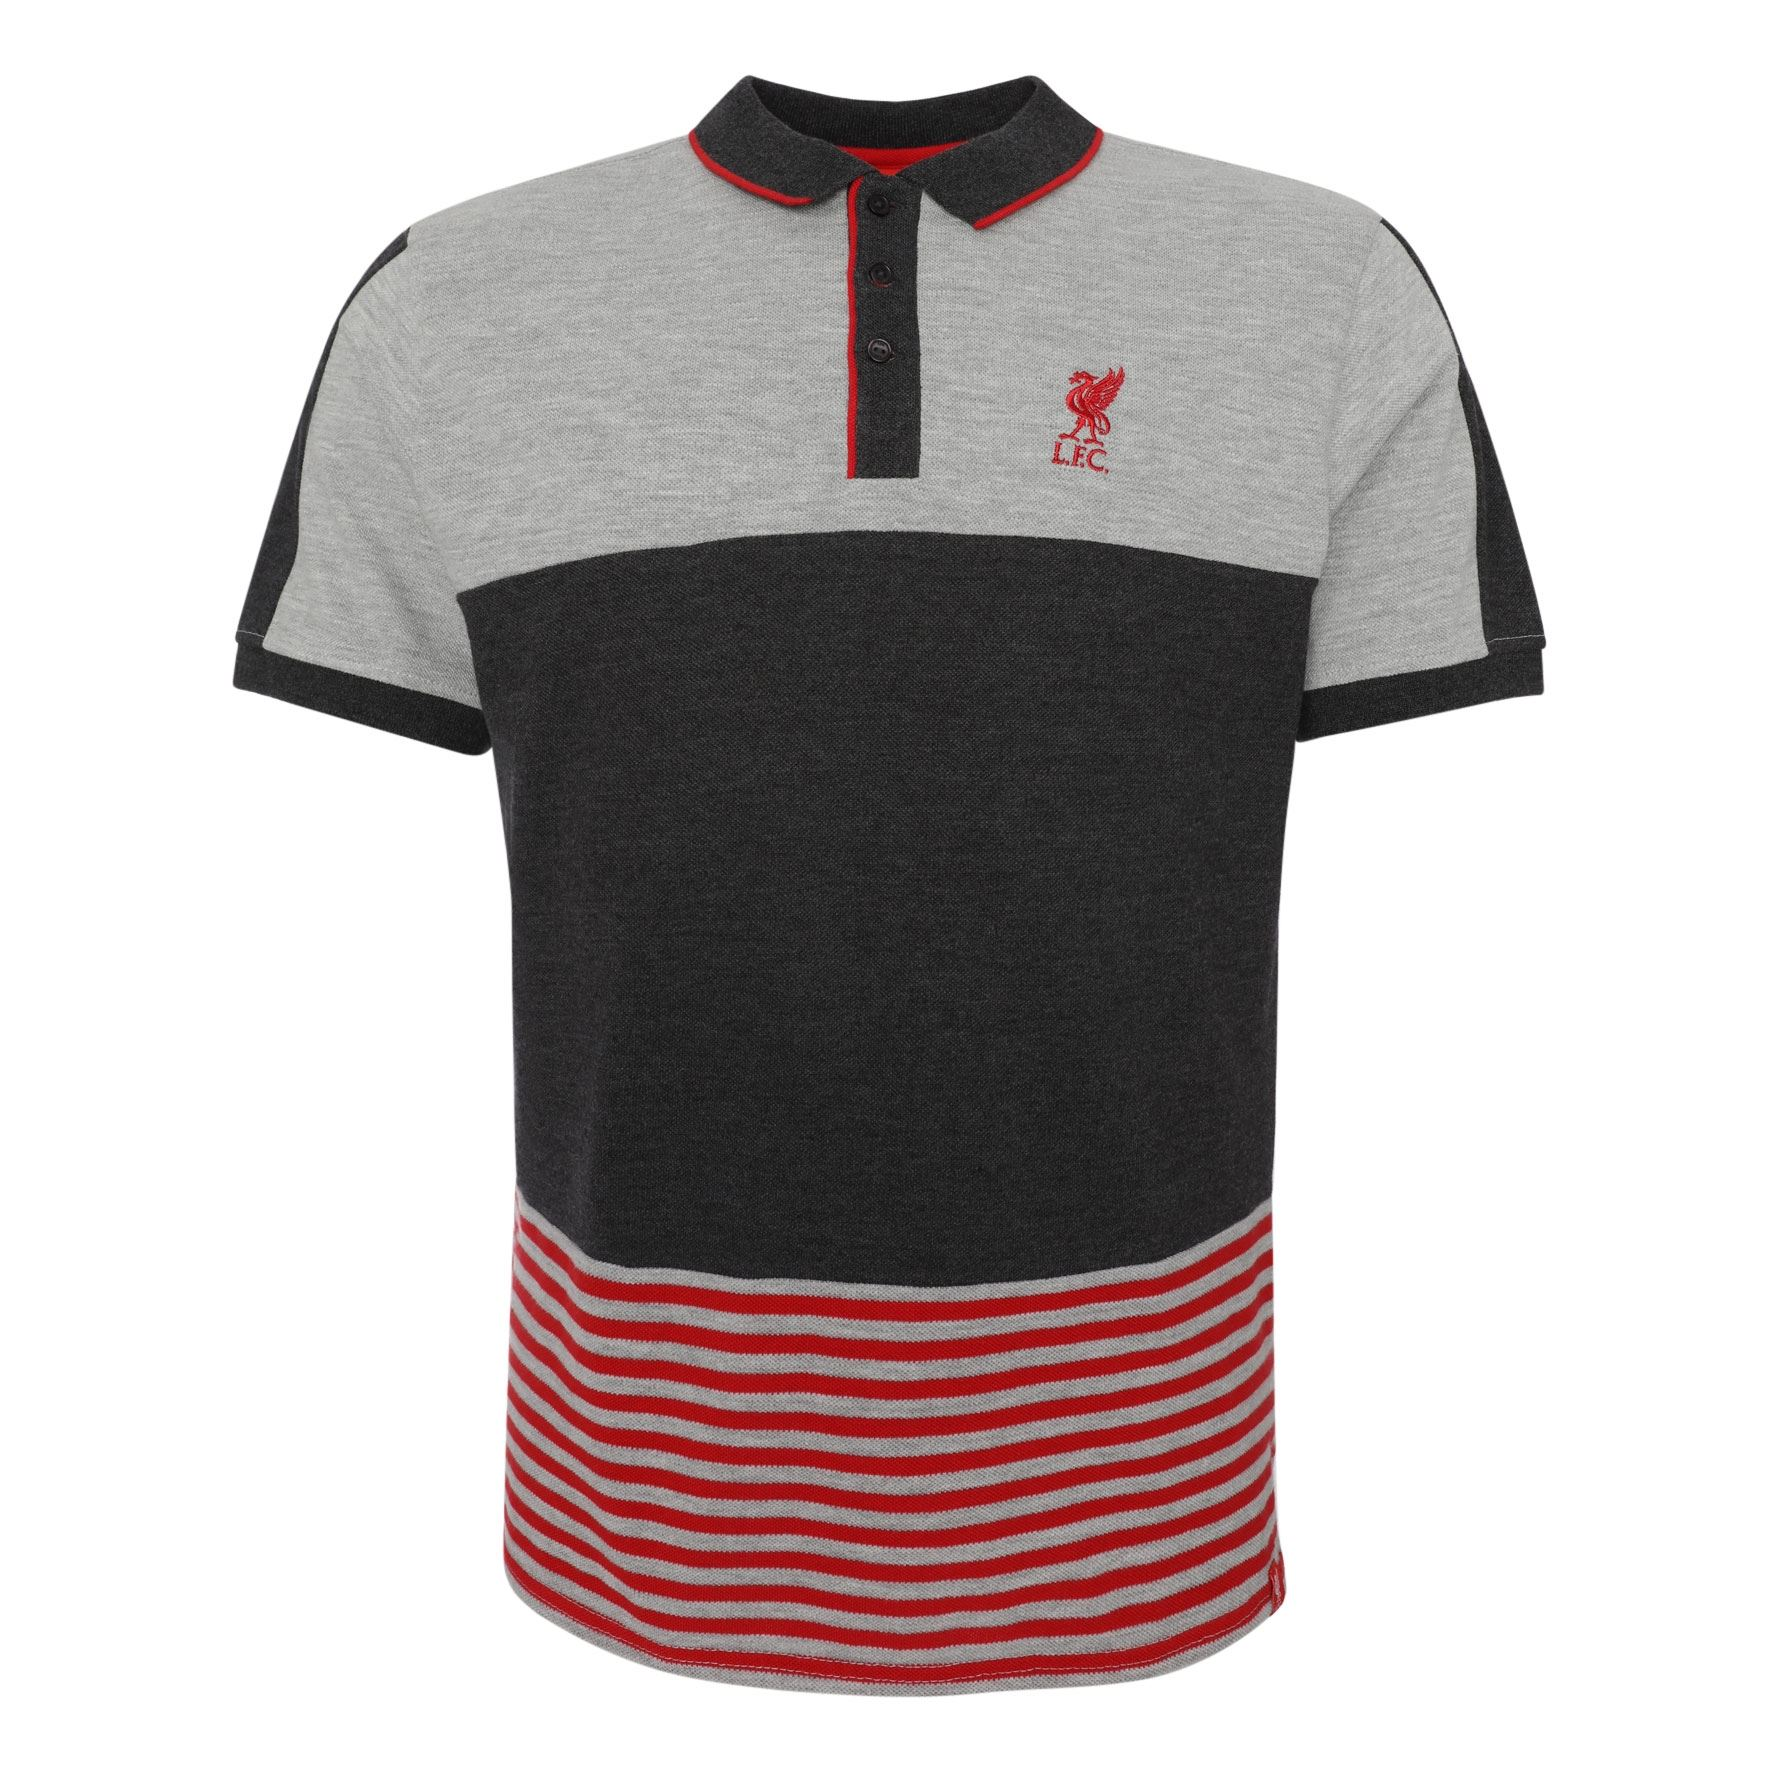 2541dafb4 Details about Liverpool FC Mens Football Colour Block Stripe Polo T-Shirt  SS19 LFC Official